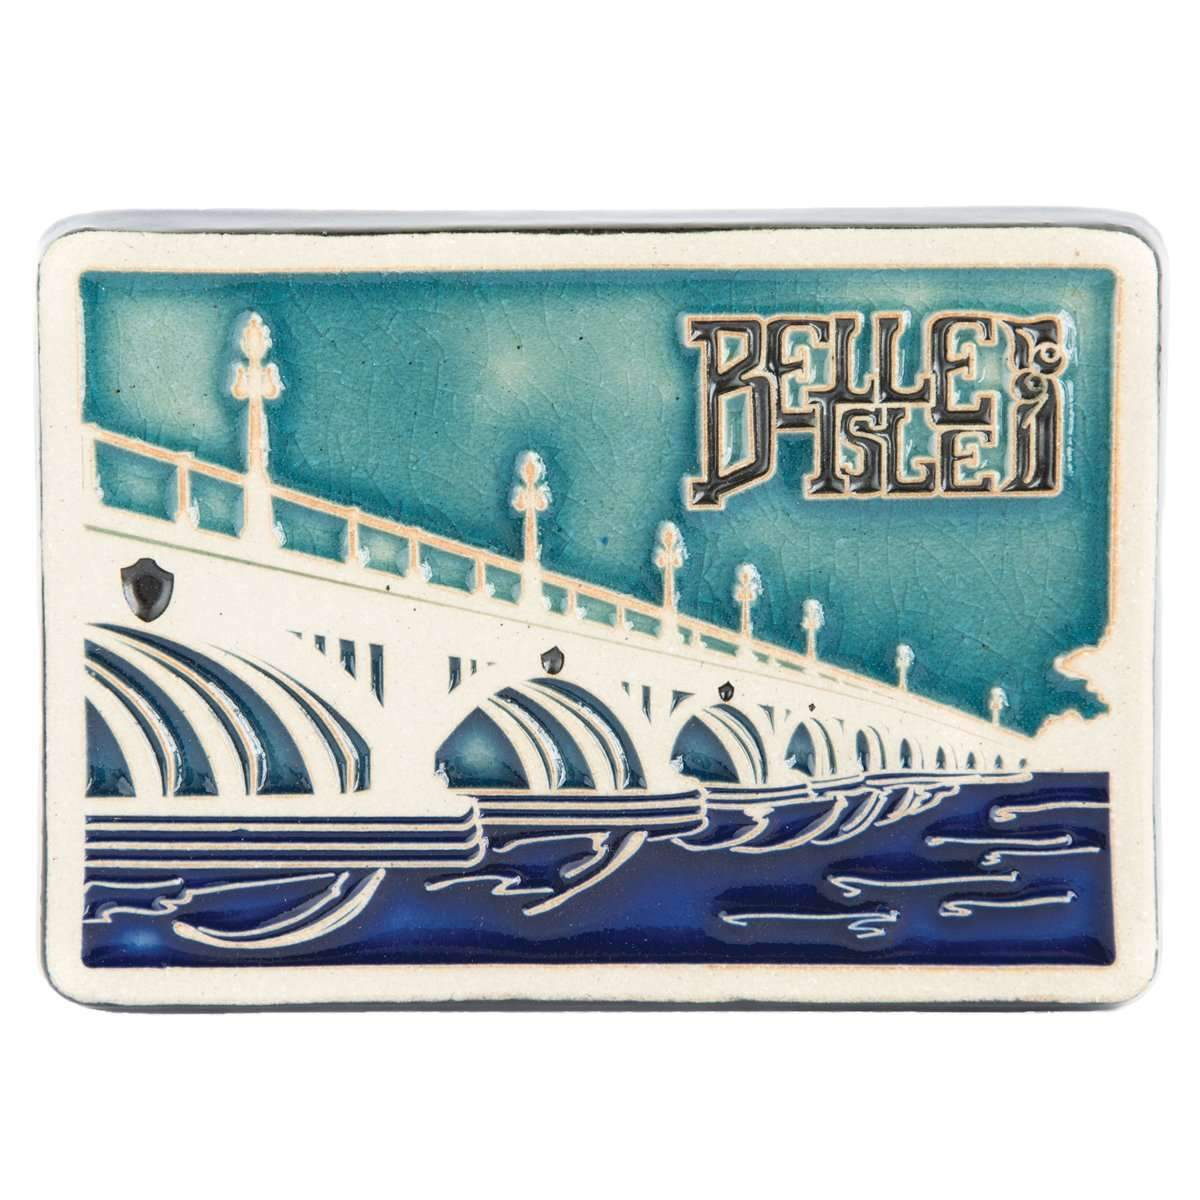 Belle Isle Bridge Pewabic Tile